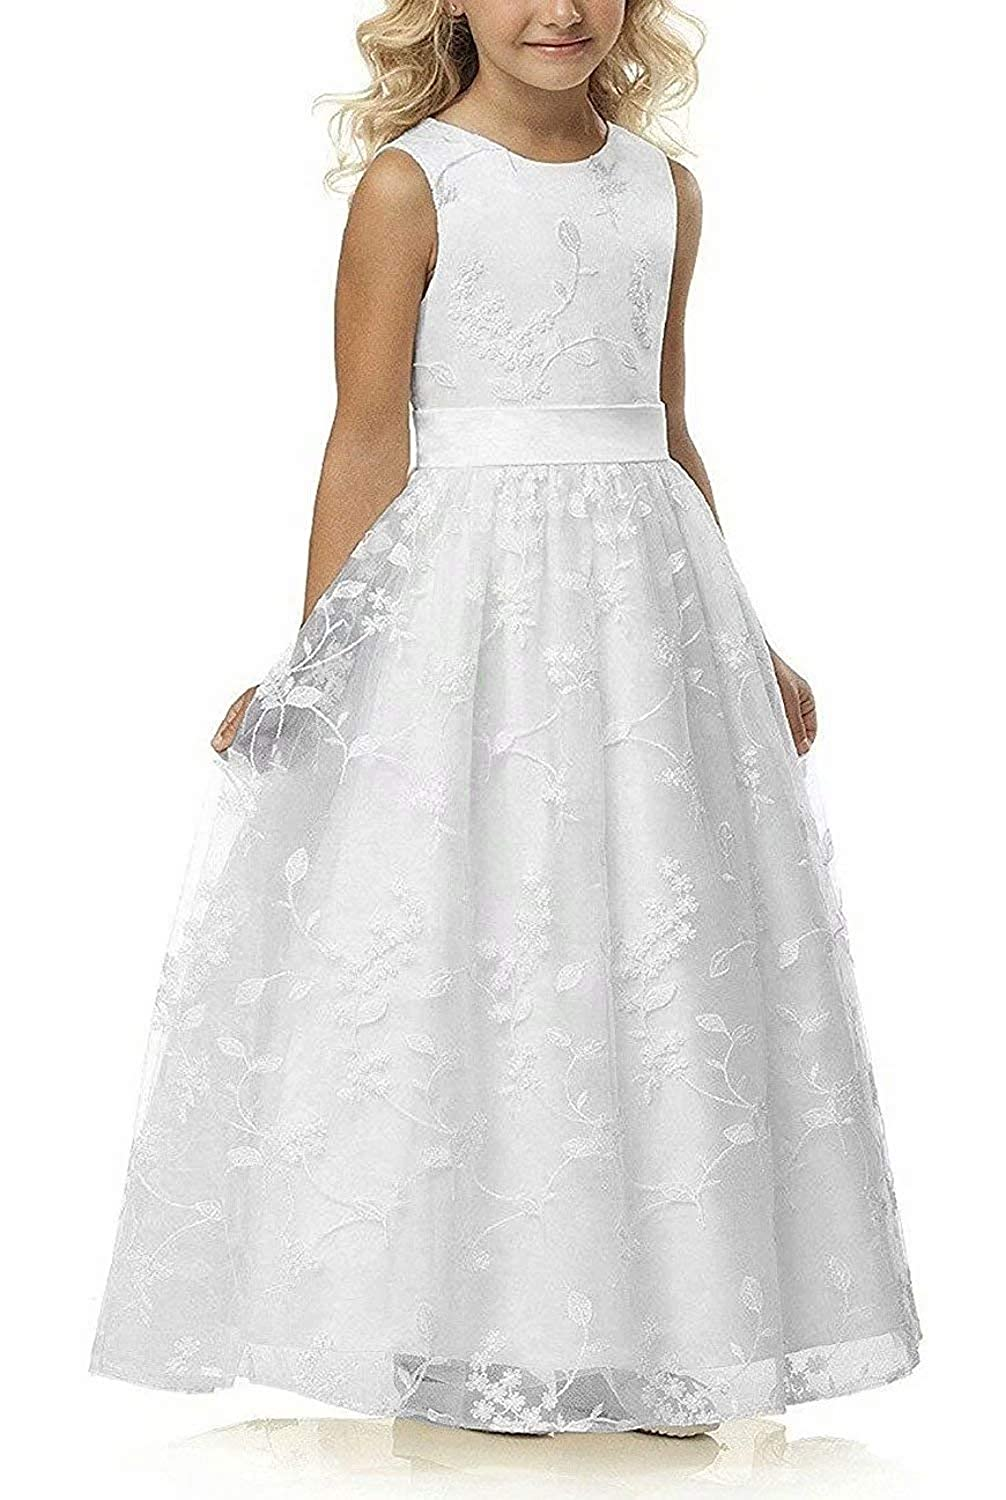 84bc43ca491 Amazon.com  A line Wedding Pageant Lace Flower Girl Dress with Belt 2-12 Year  Old  Clothing